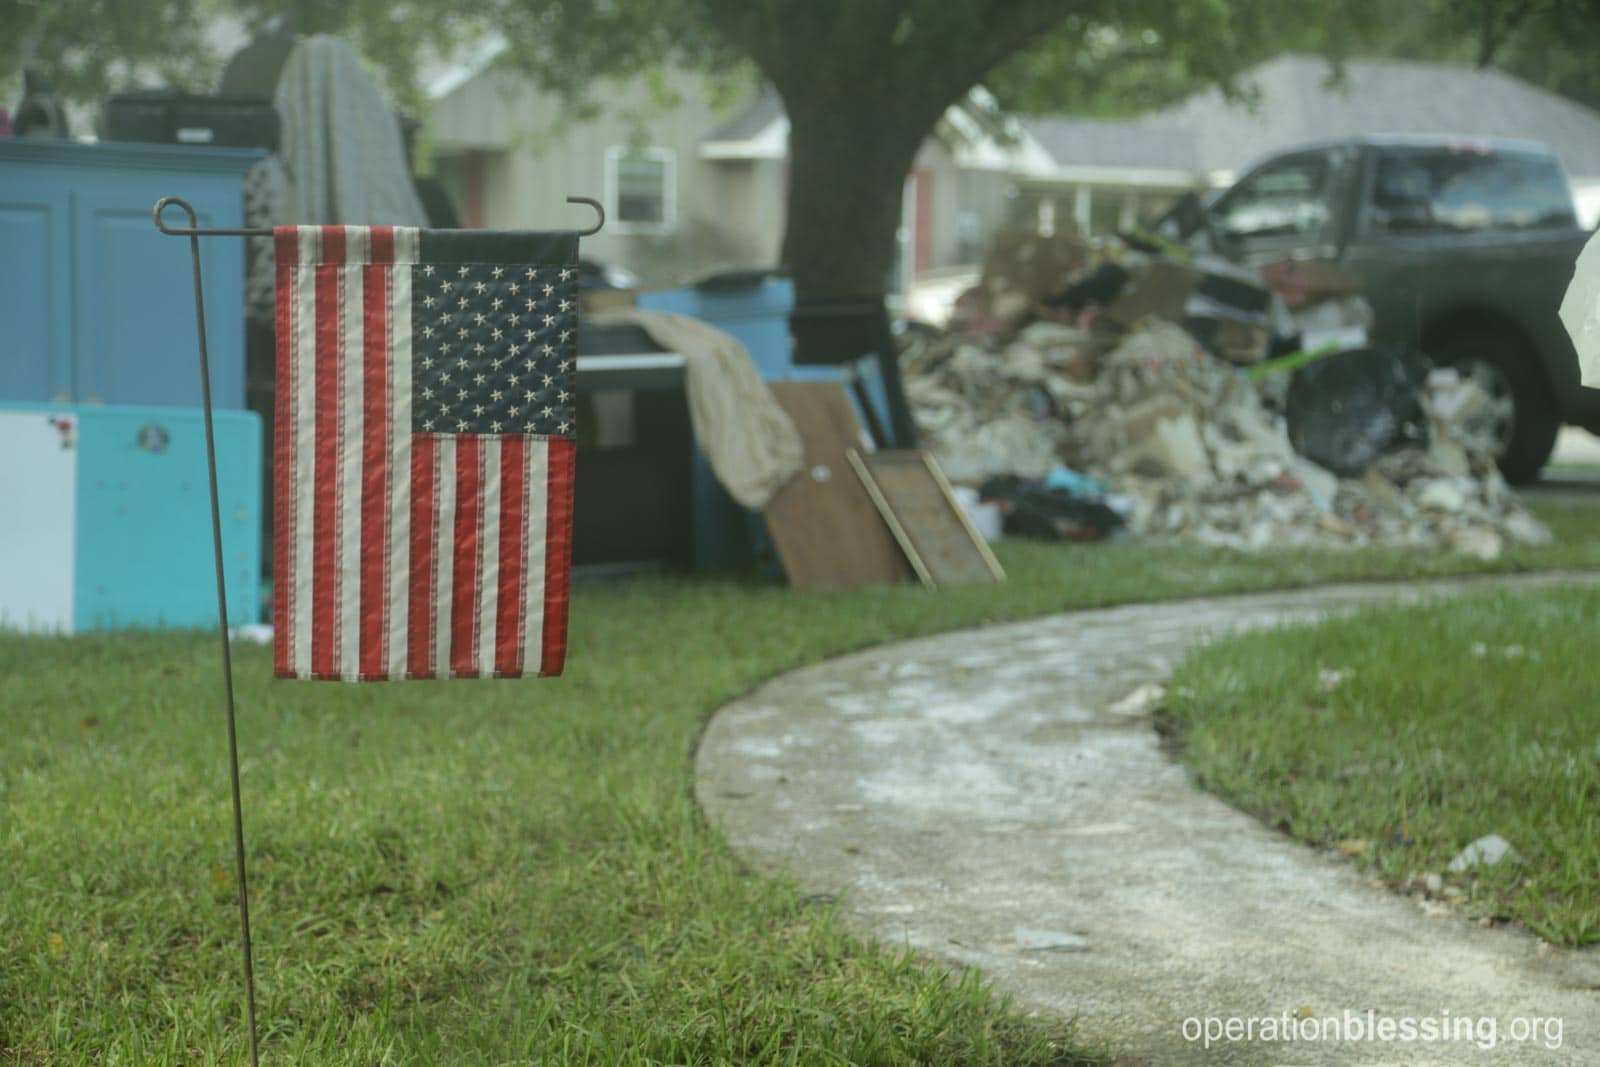 The rubble from the house with an American flag in front.